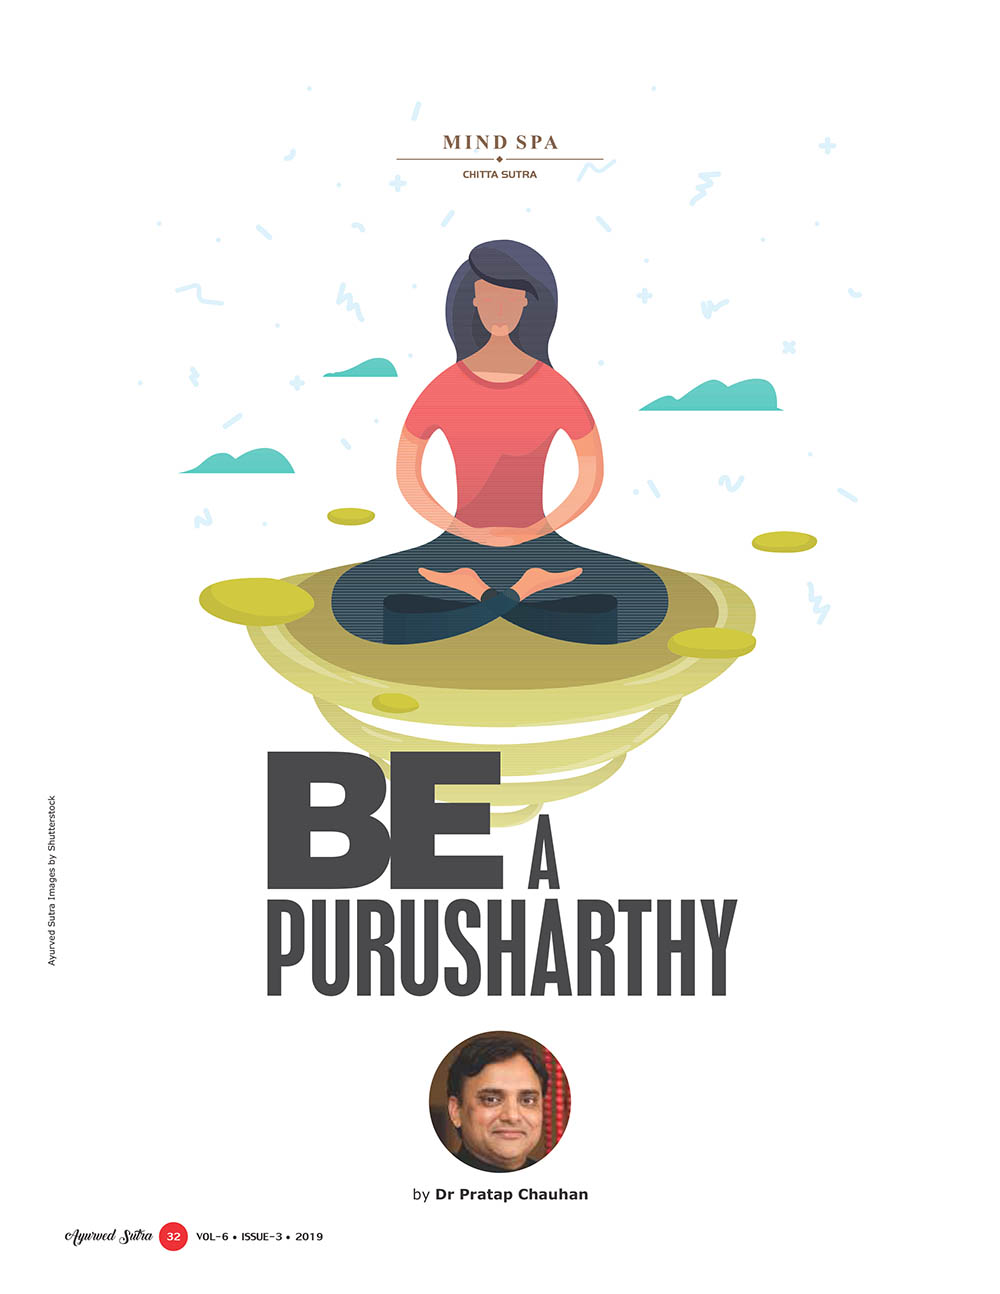 Ayurvedsutra Vol 06 issue 01 02 34 - Be a Purusharthy